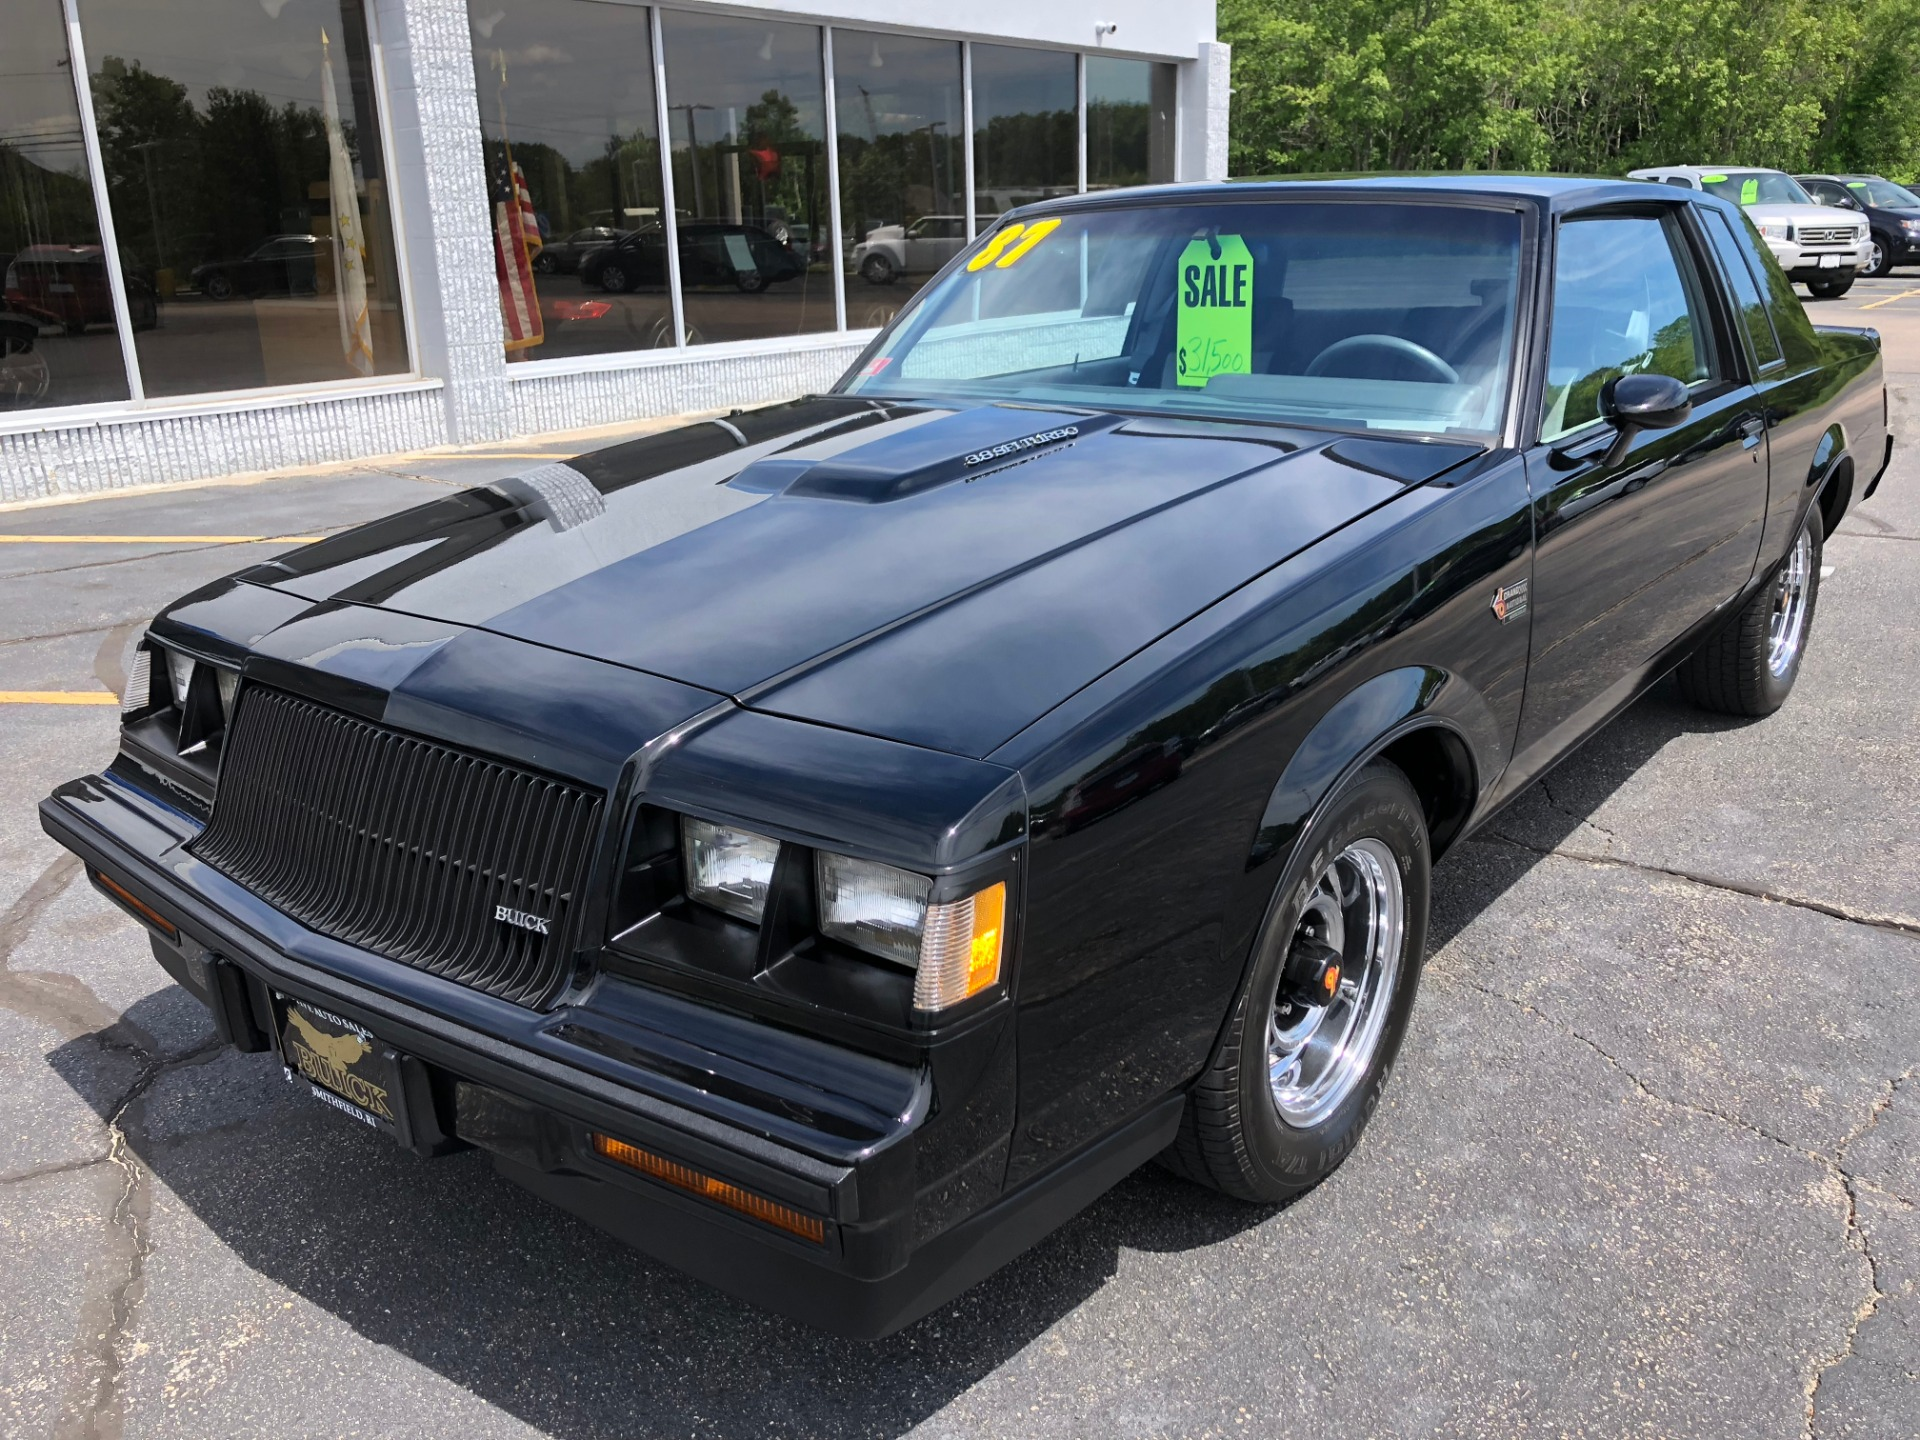 1987 buick regal grand nat grand national stock 951 for sale near smithfield ri ri buick dealer. Black Bedroom Furniture Sets. Home Design Ideas